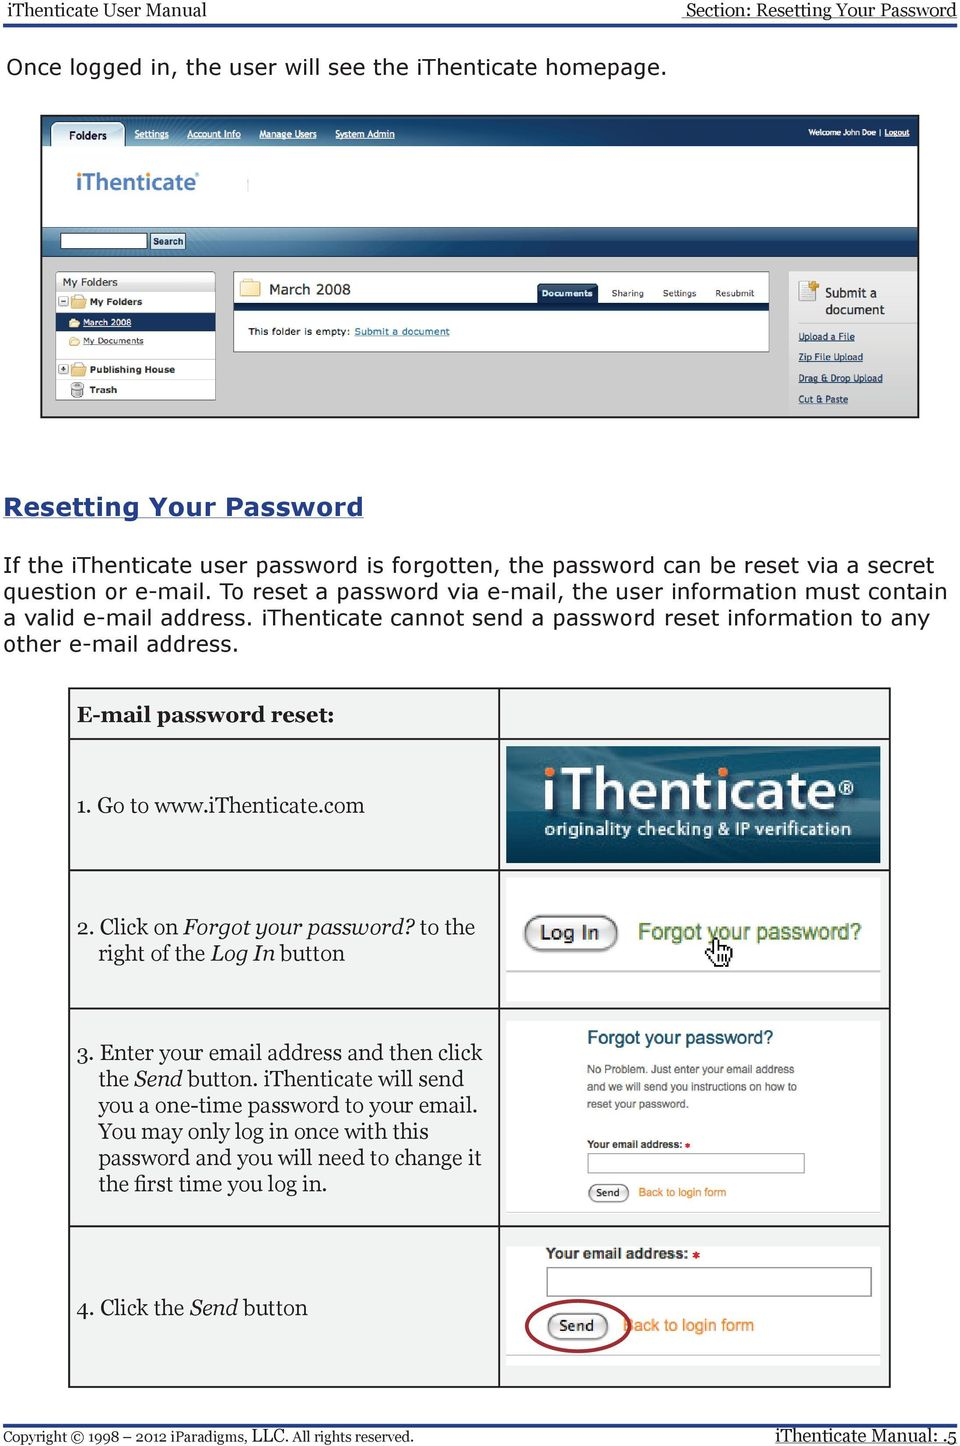 To reset a password via e-mail, the user information must contain a valid e-mail address. ithenticate cannot send a password reset information to any other e-mail address.